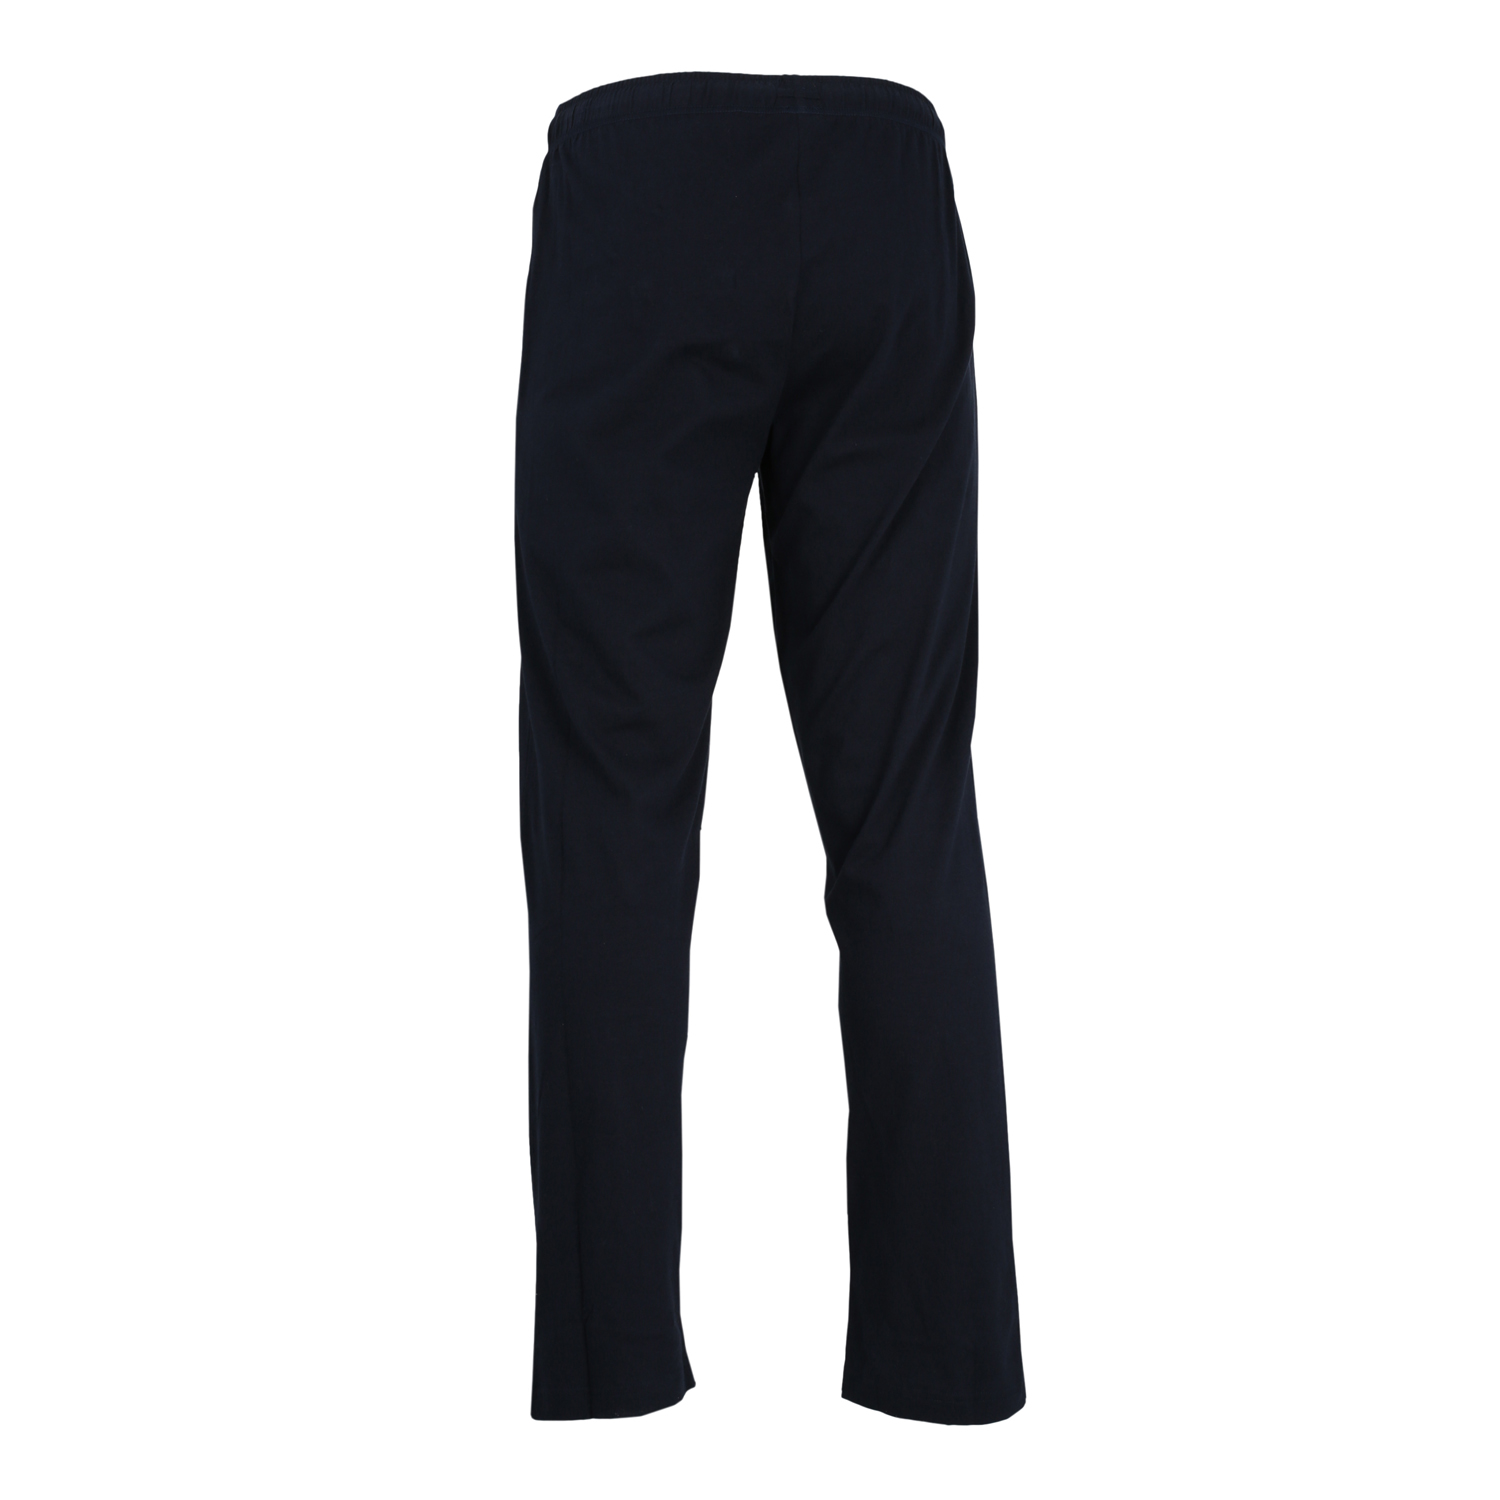 Detail Image to Dark blue pyjama trousers by Ceceba in extra large sizes up to 9XL